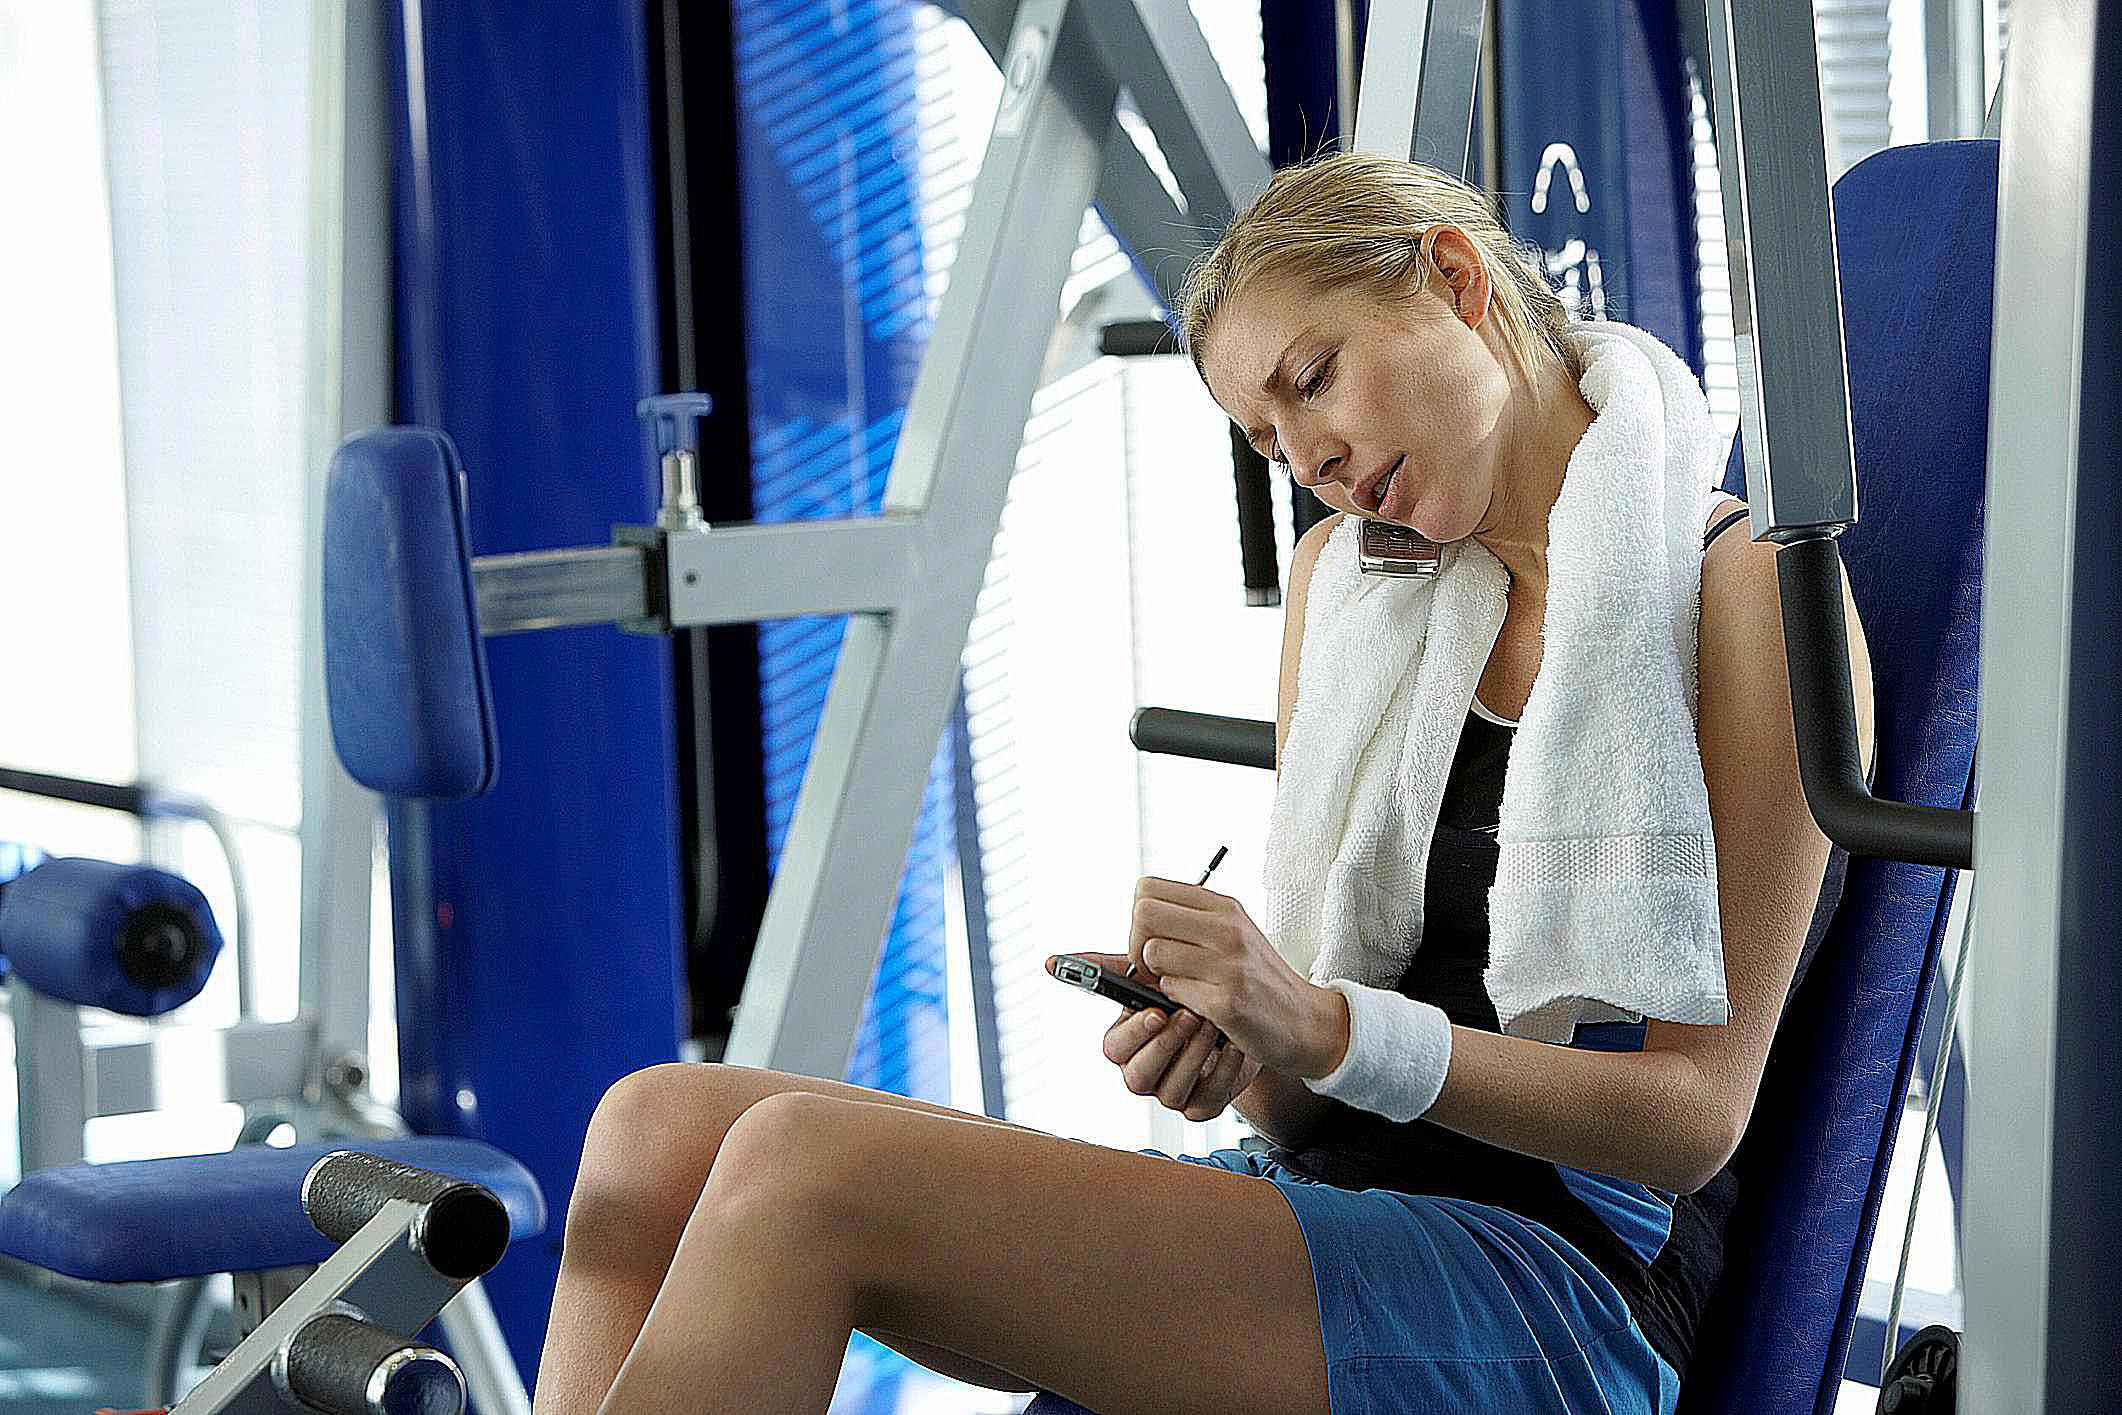 Woman working out on equipment at the gym